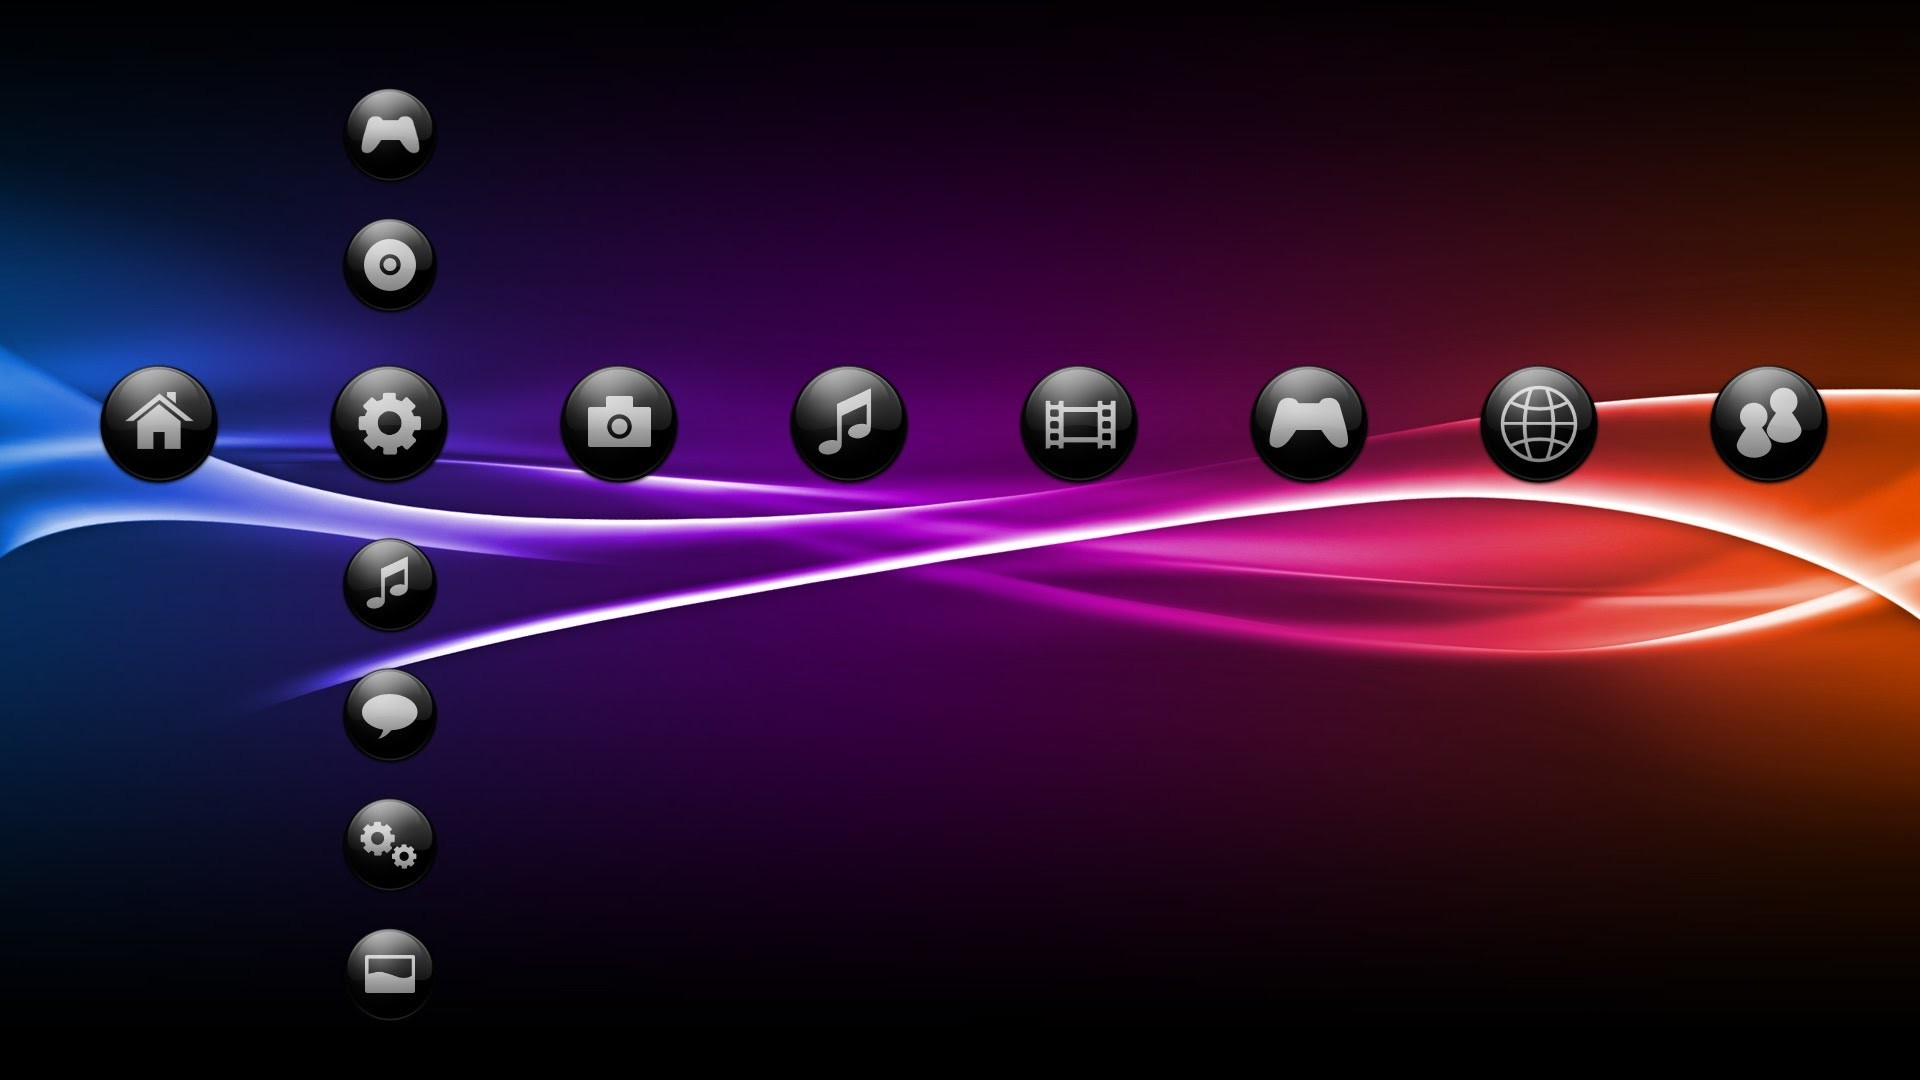 1920x1080 How to get PS3 Themes and Wallpapers Free & without USB